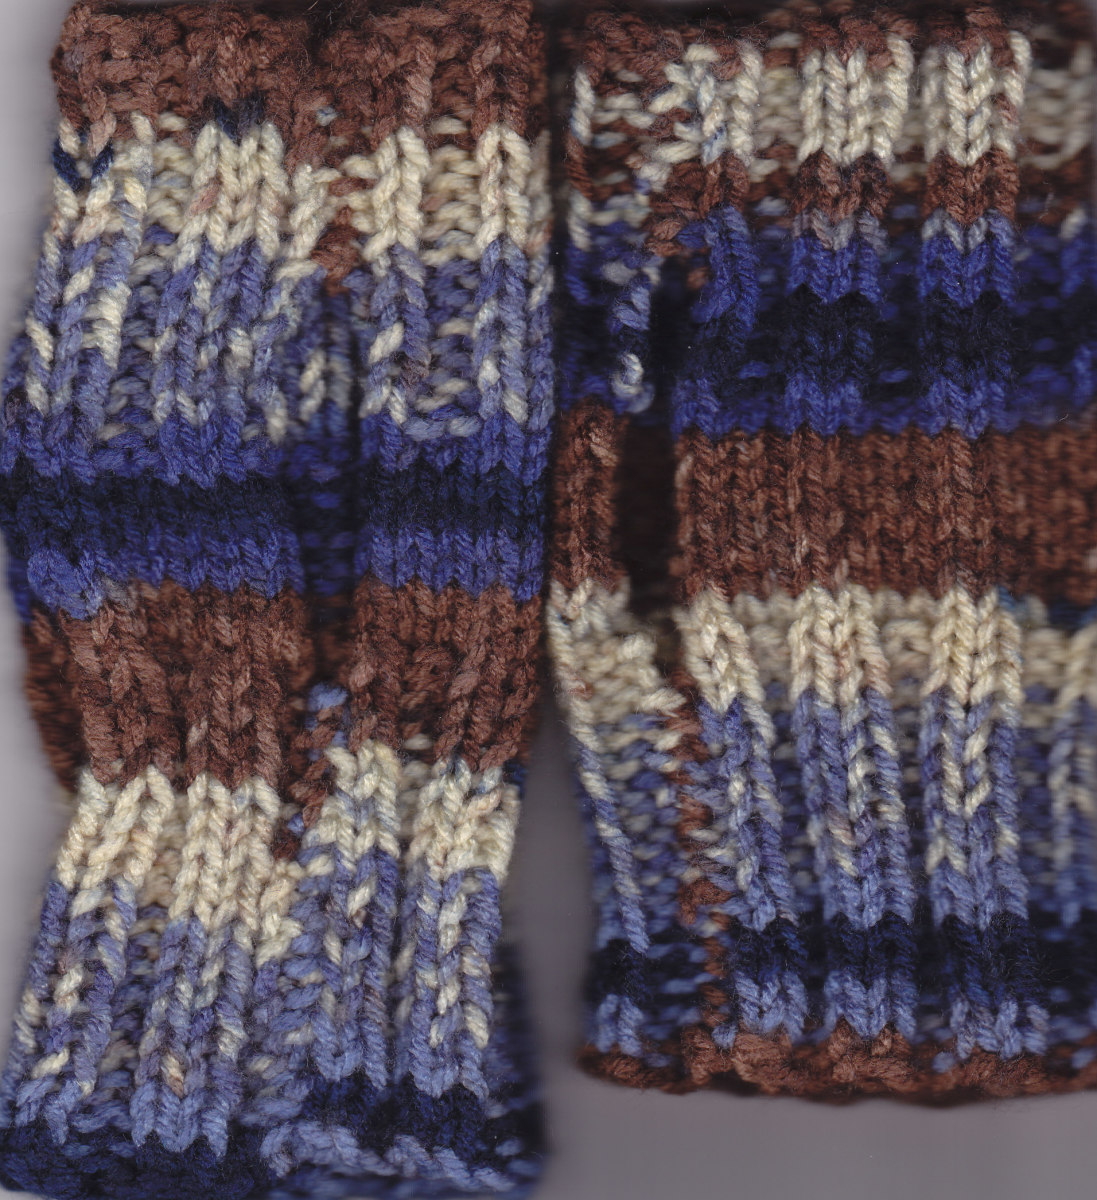 Shows opening/sewn parts above and below the thumb hole. Some Ombre yarn self-stripes.